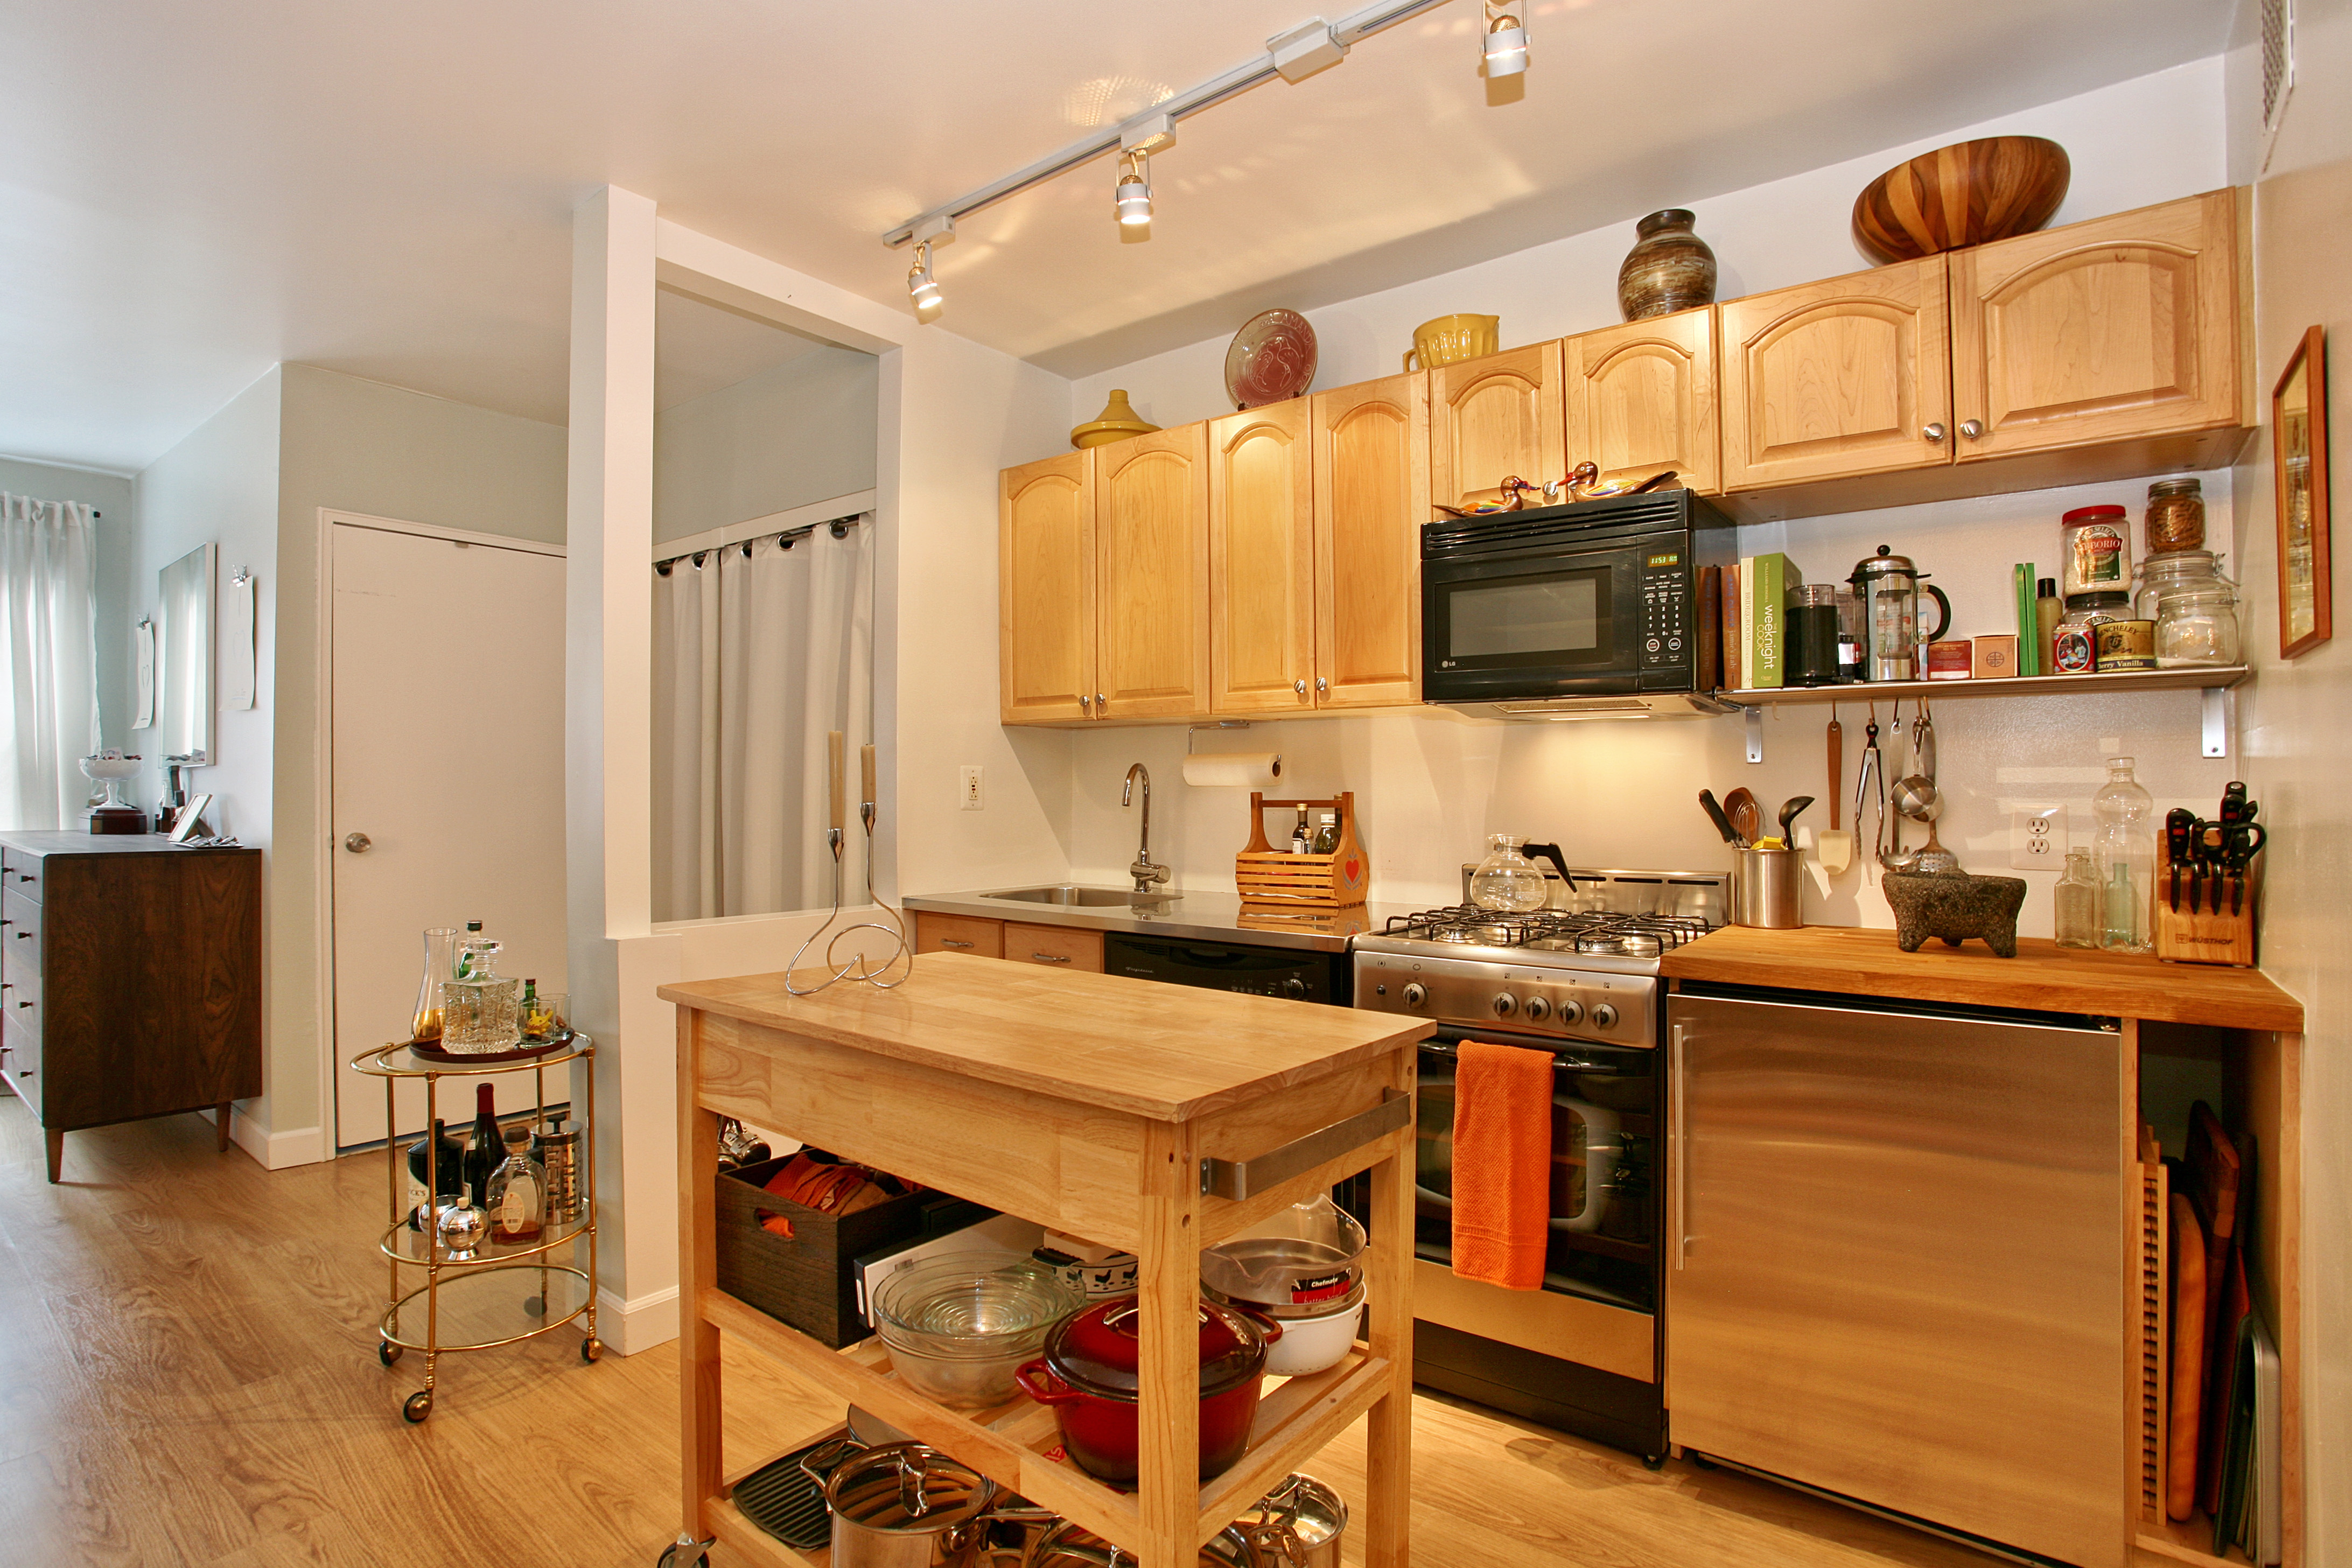 Kitchens: What's Your Ideal Kitchen Type? | The Real Estate Beauty ...